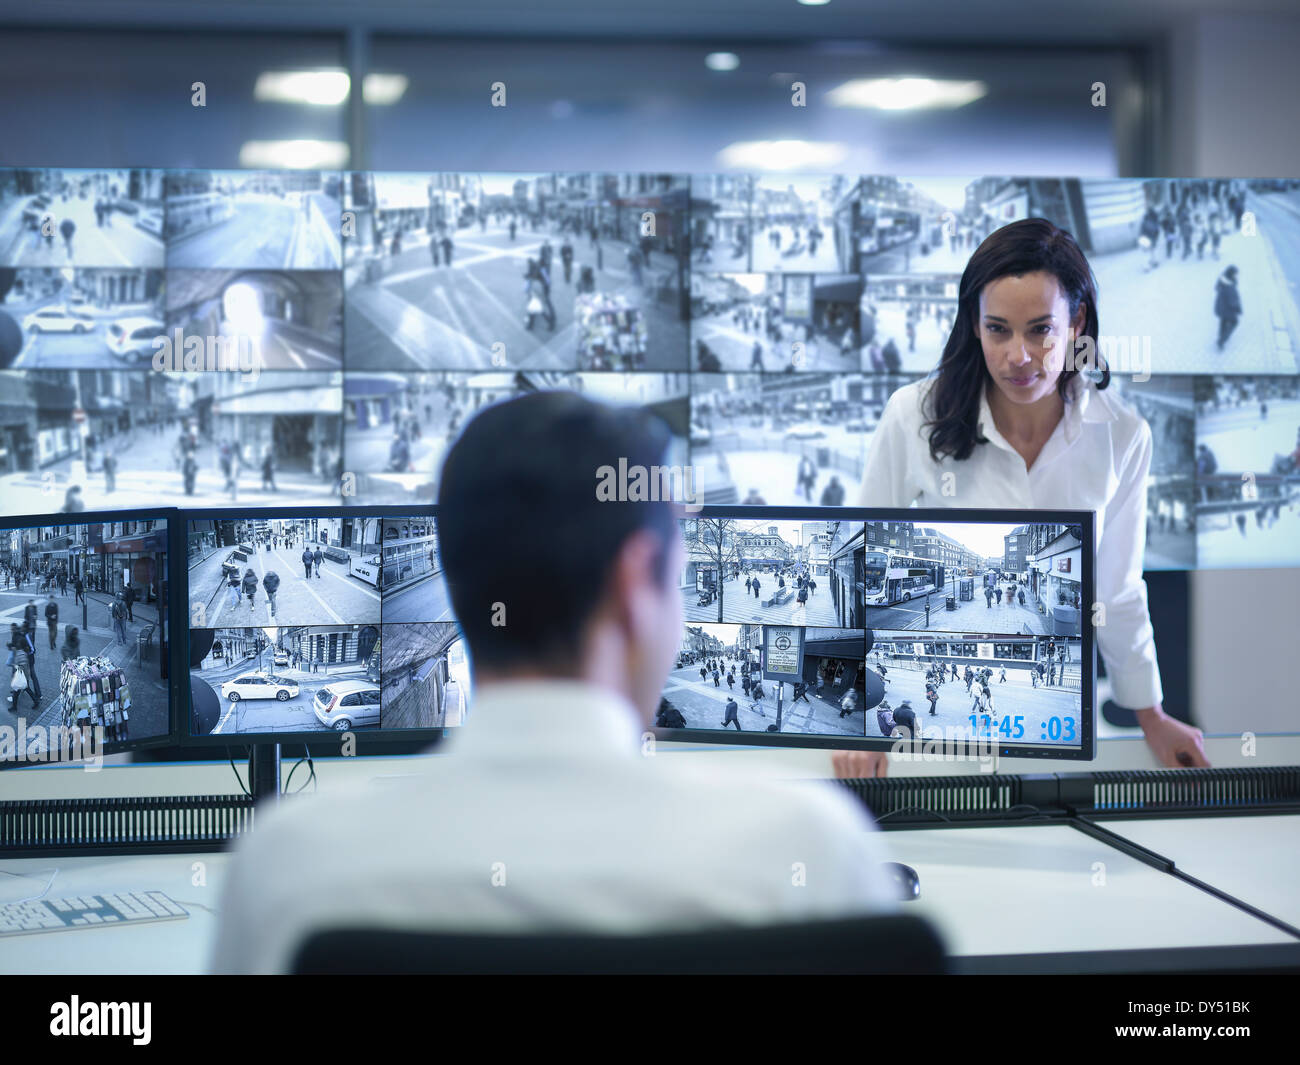 Security guards working at CCTV screens in control room - Stock Image